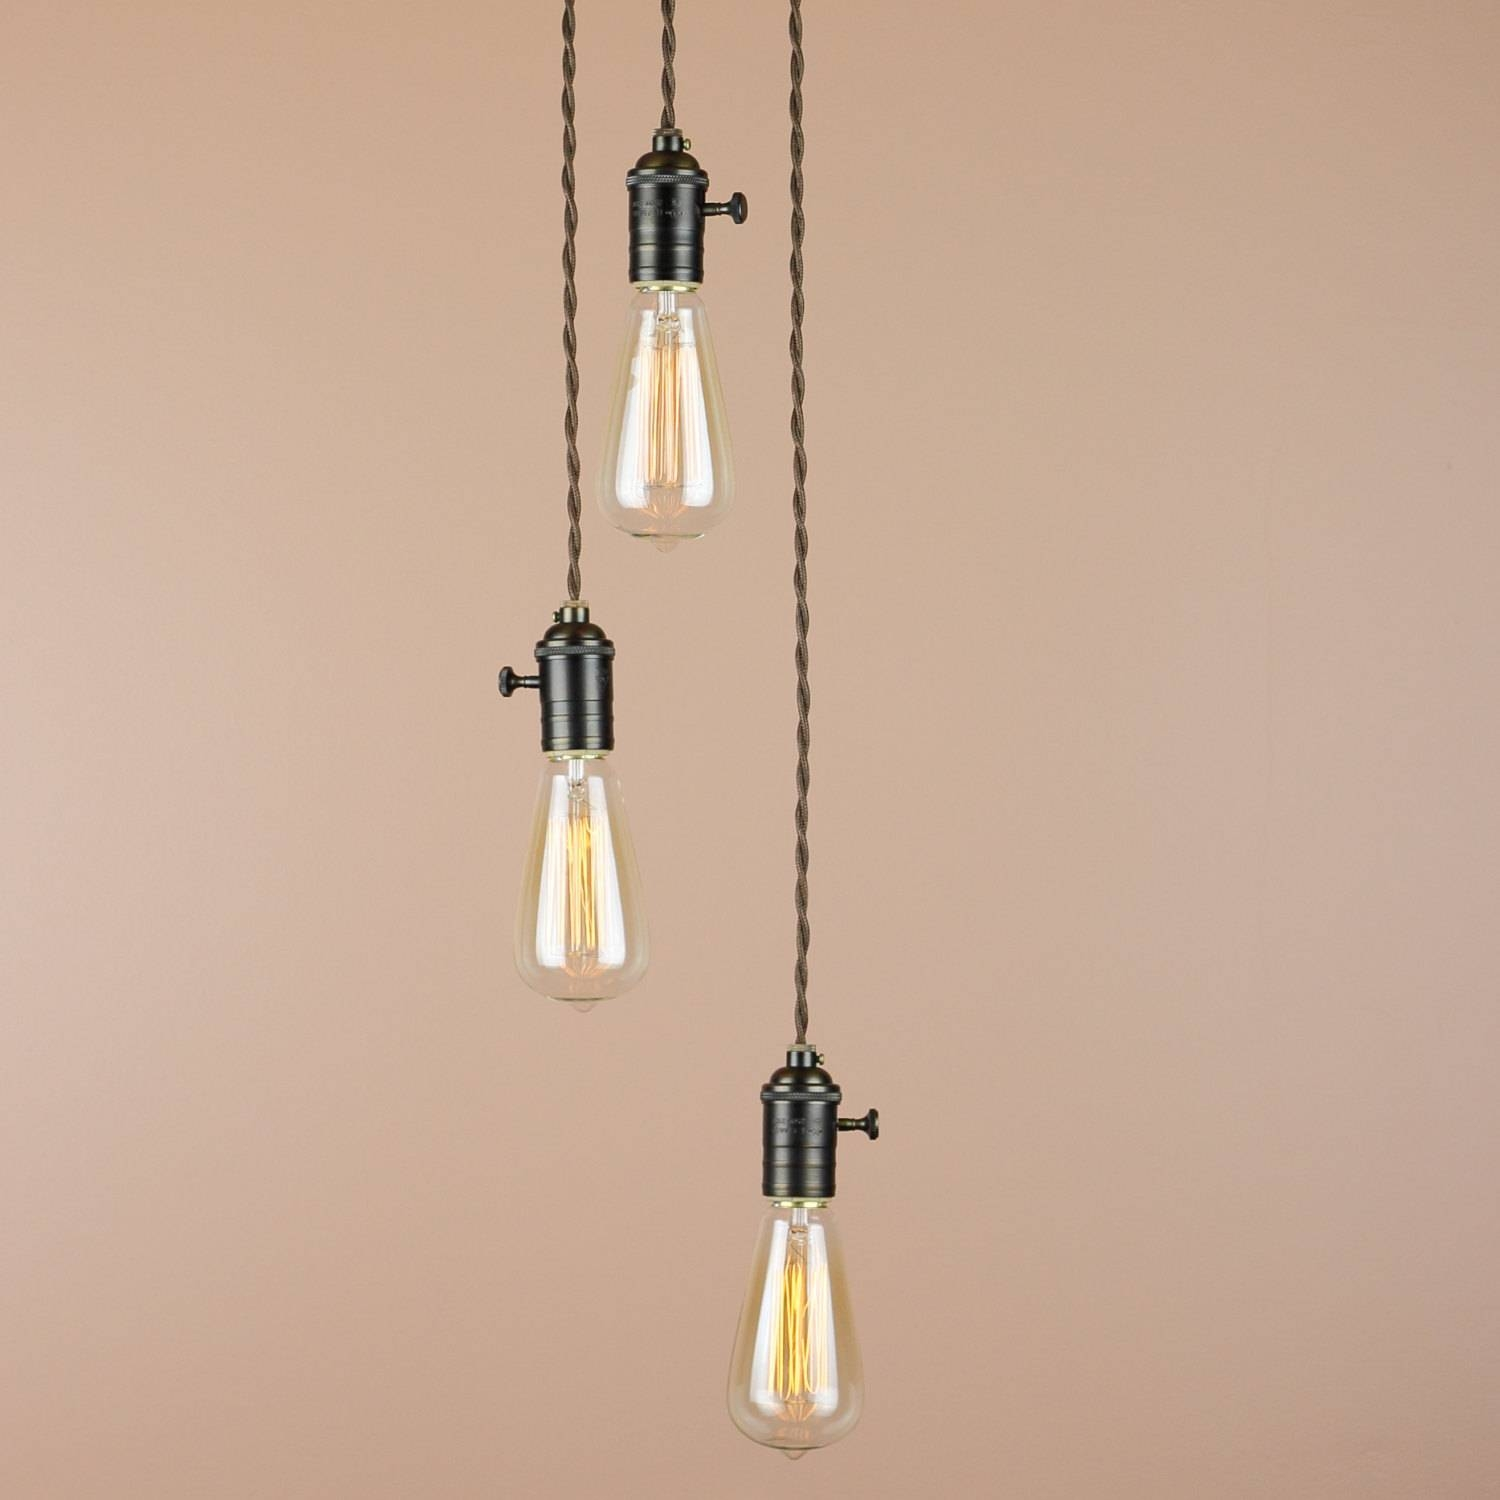 Amazing Hanging Light Cord 101 Pendant Light Suspension Cord Set throughout Cord Sets For Pendant Lights (Image 2 of 15)